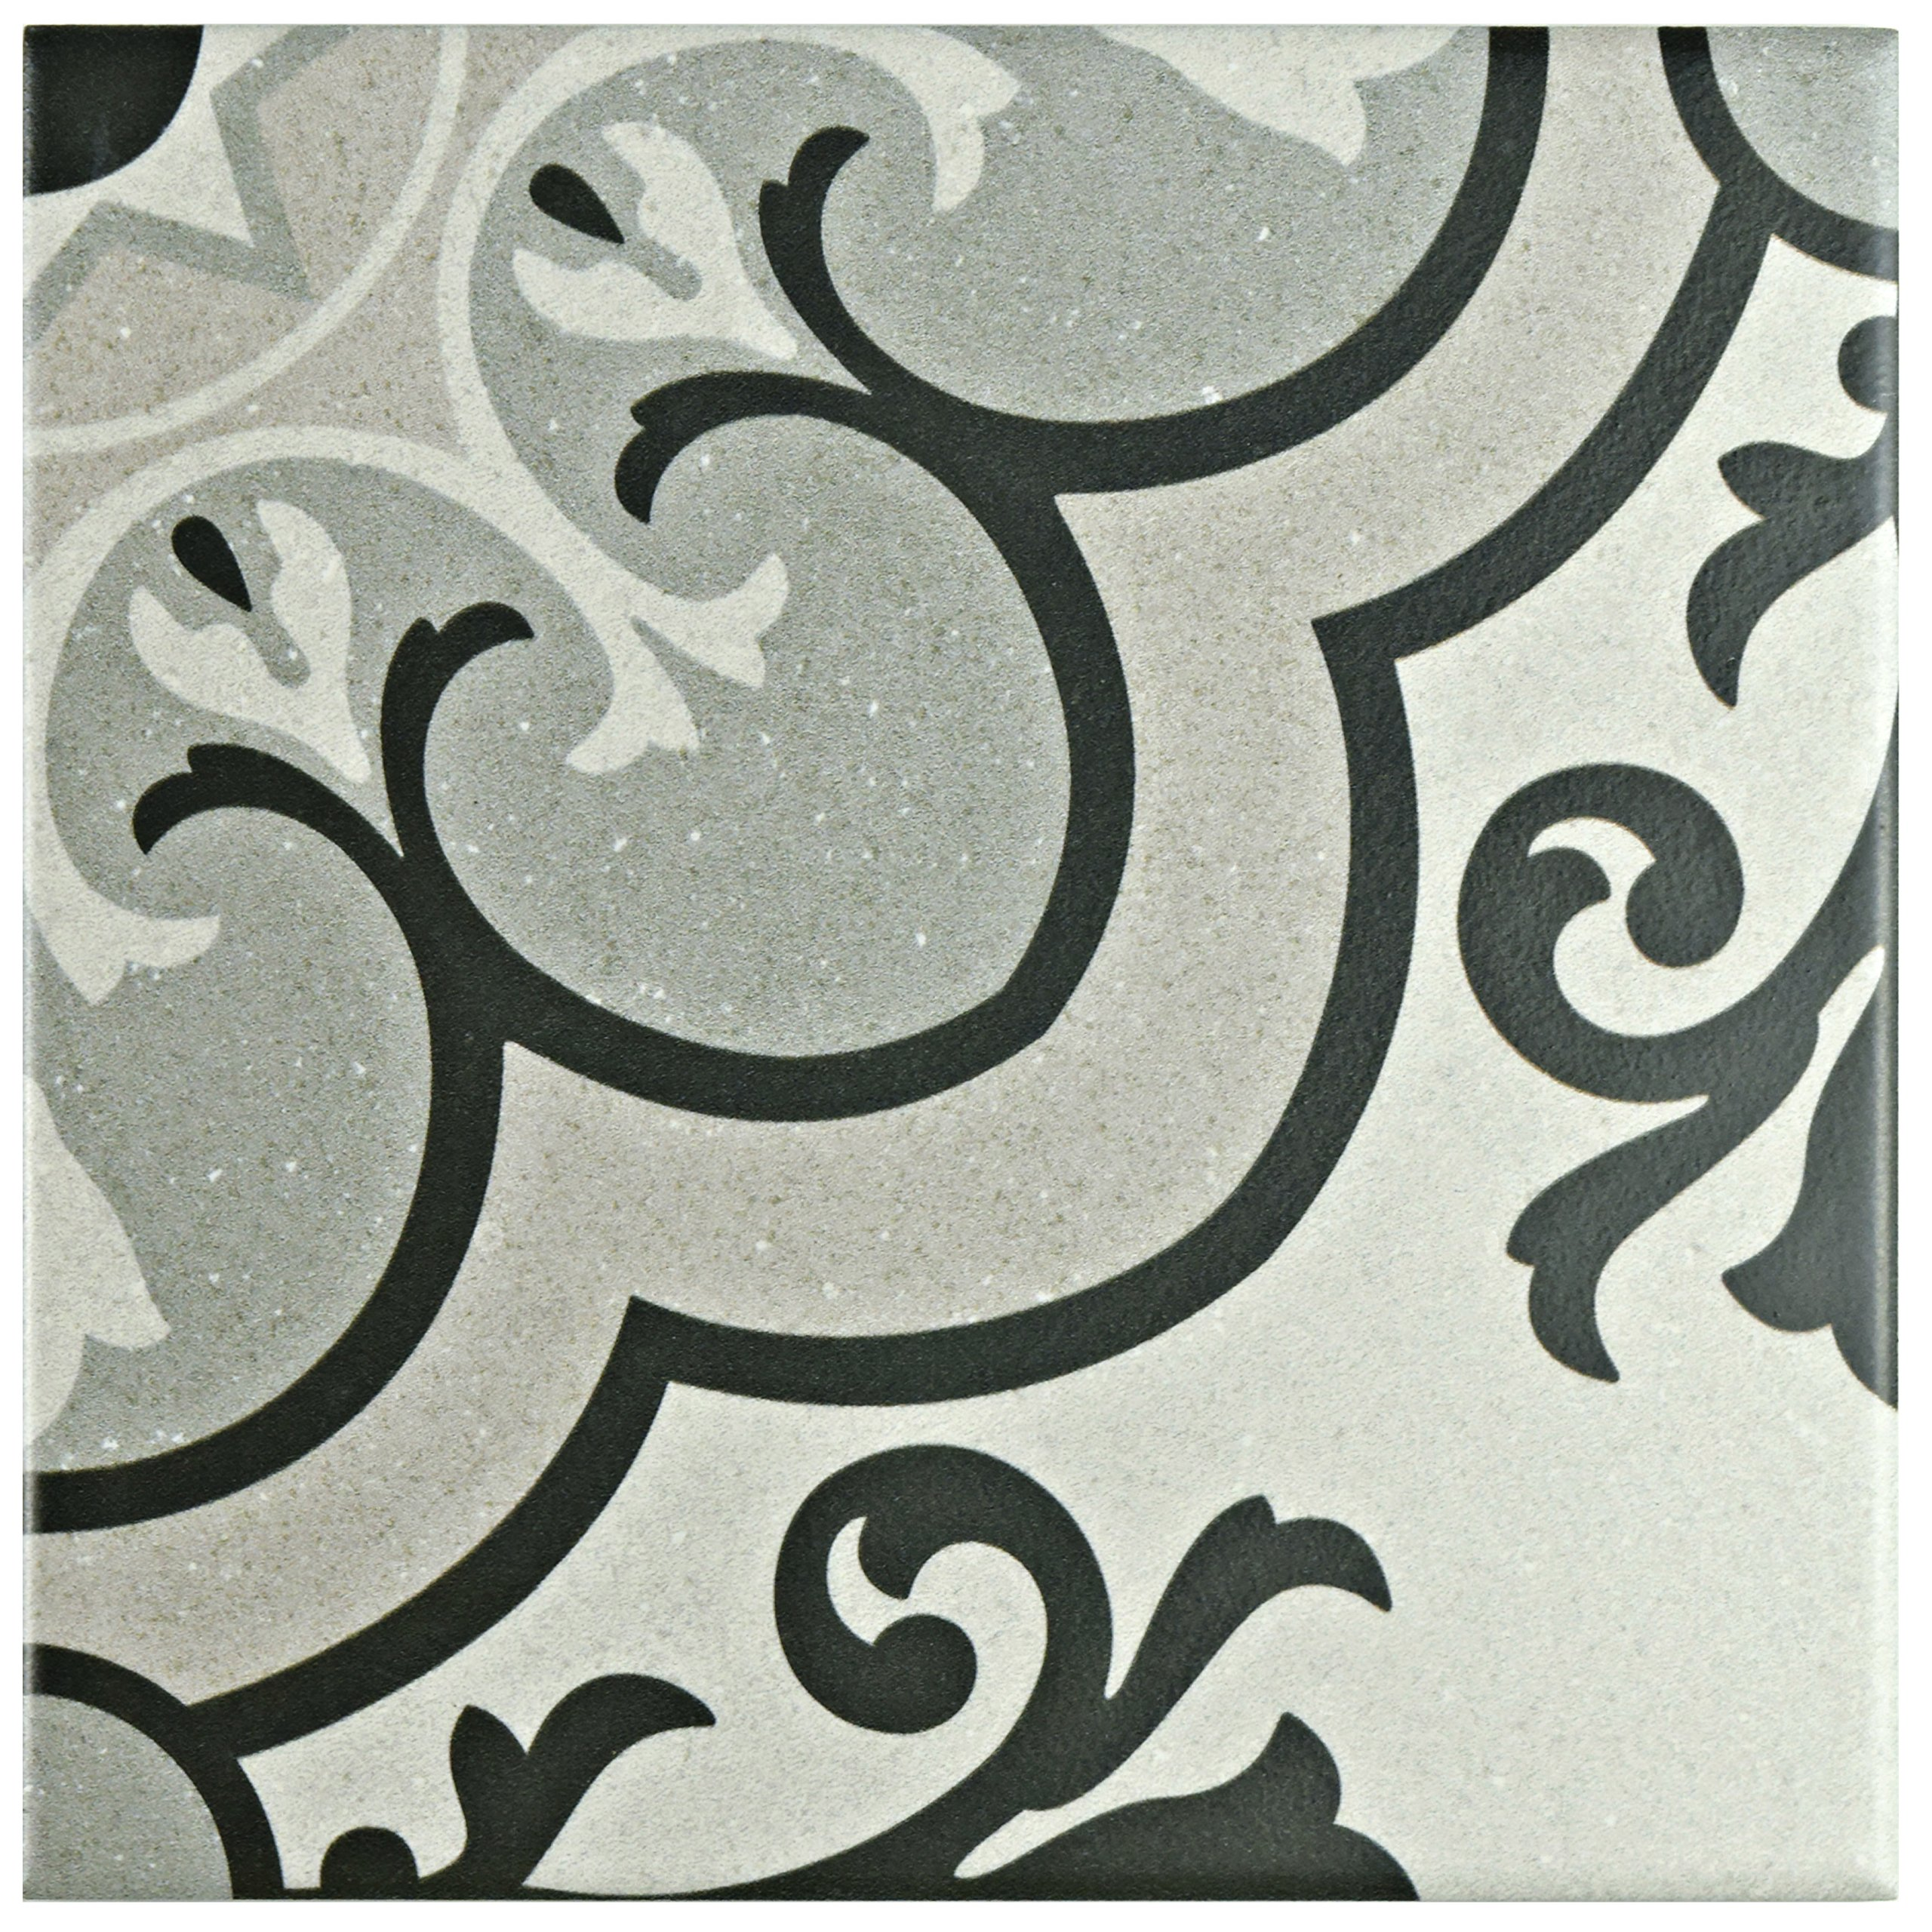 SomerTile FAE6BZS Kallyno Porcelain Floor and Wall Tile, 5.875'' x 5.875'', Solano